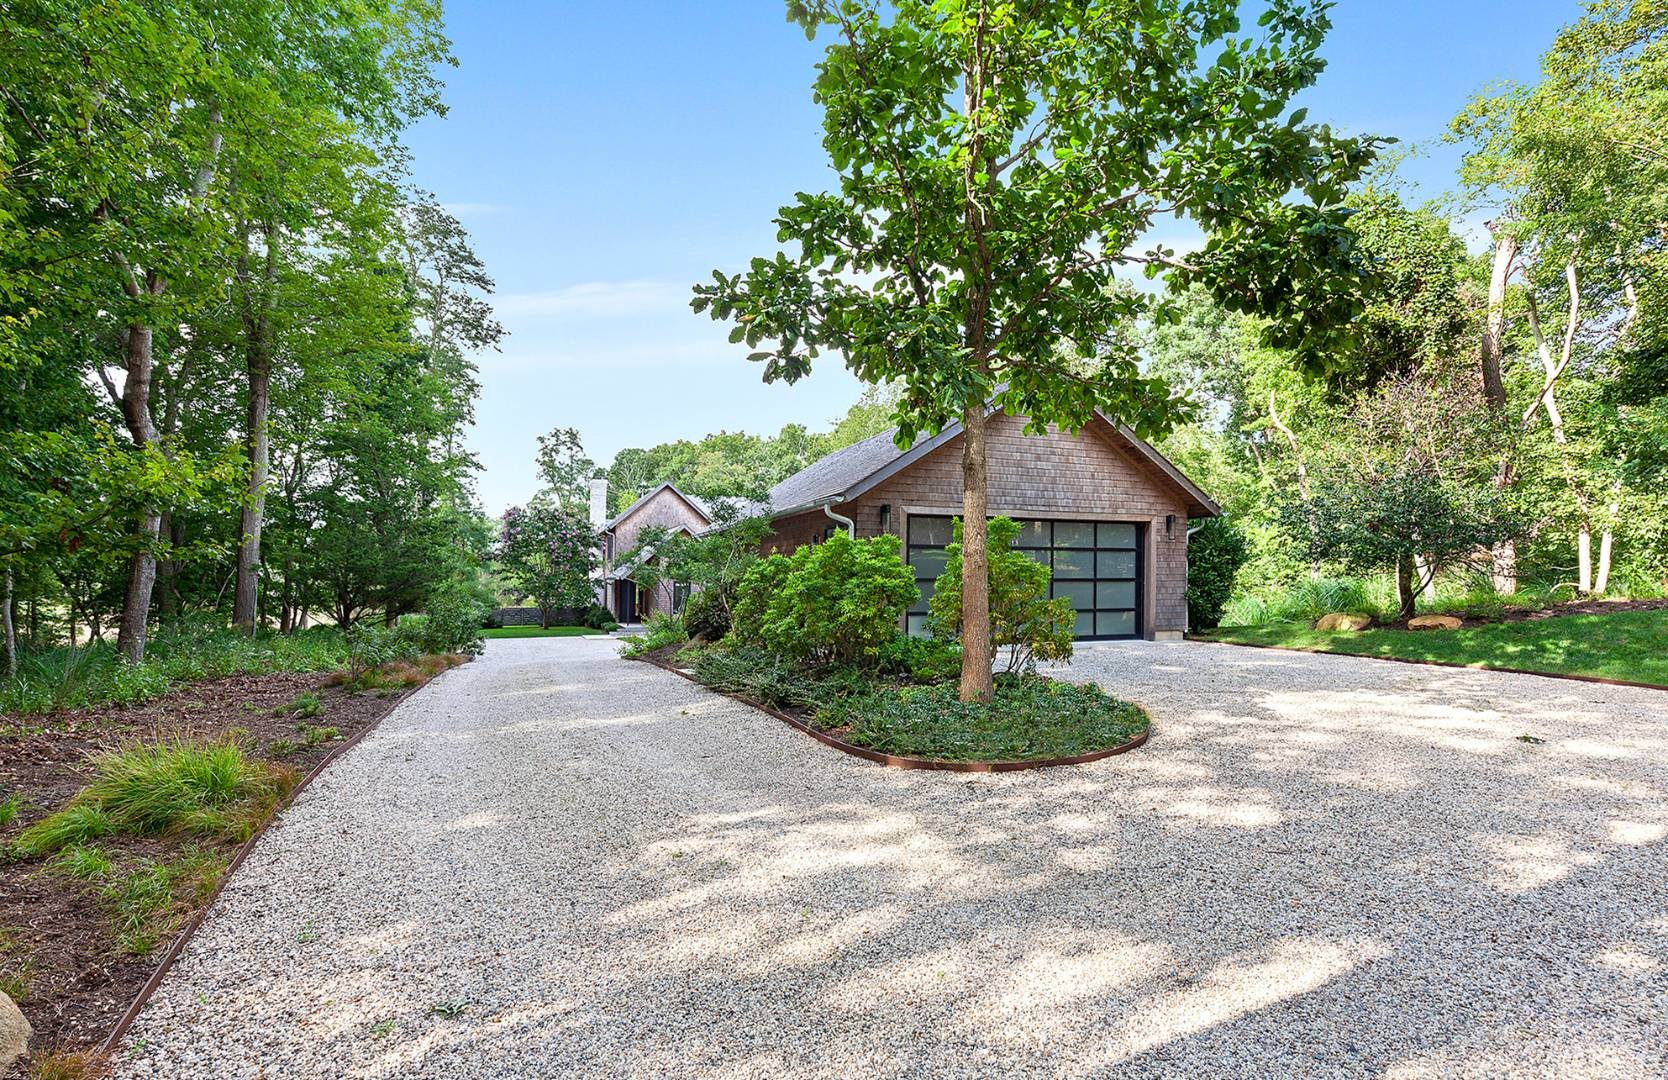 54 Old Sag Harbor Rd, Bridgehampton, NY, $4,200,000, Web #: 729980